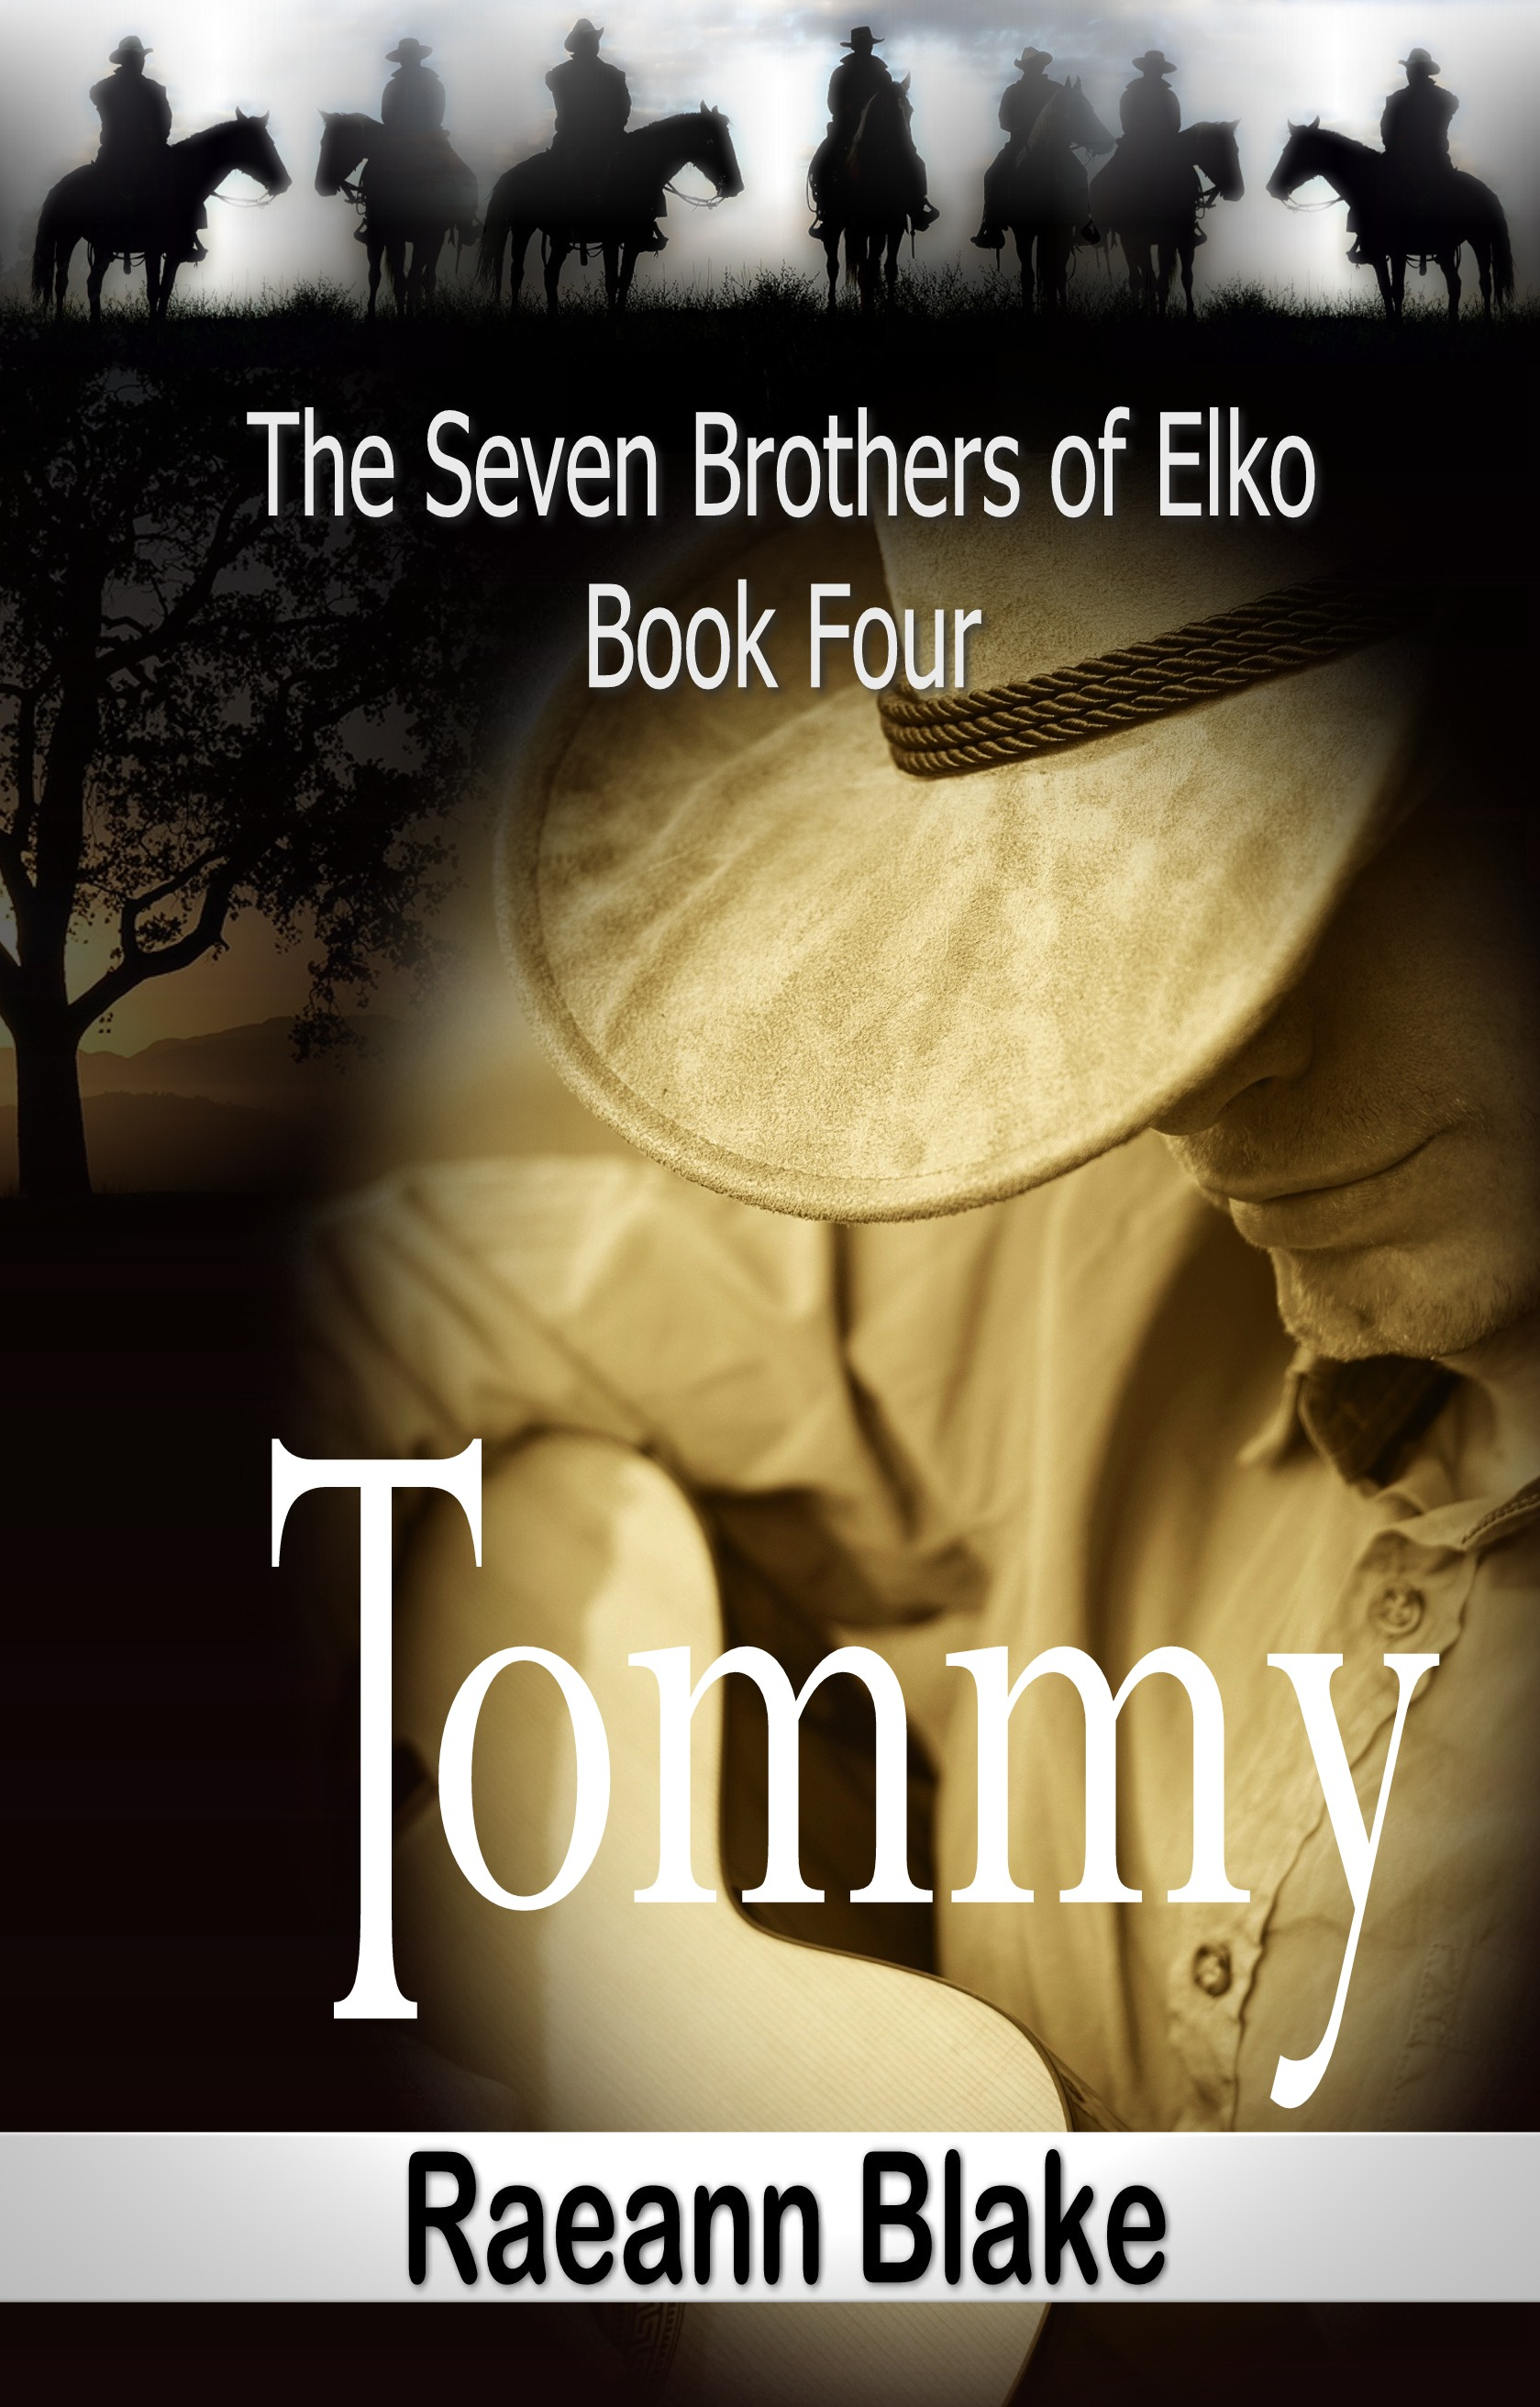 The Seven Brothers of Elko - Tommy